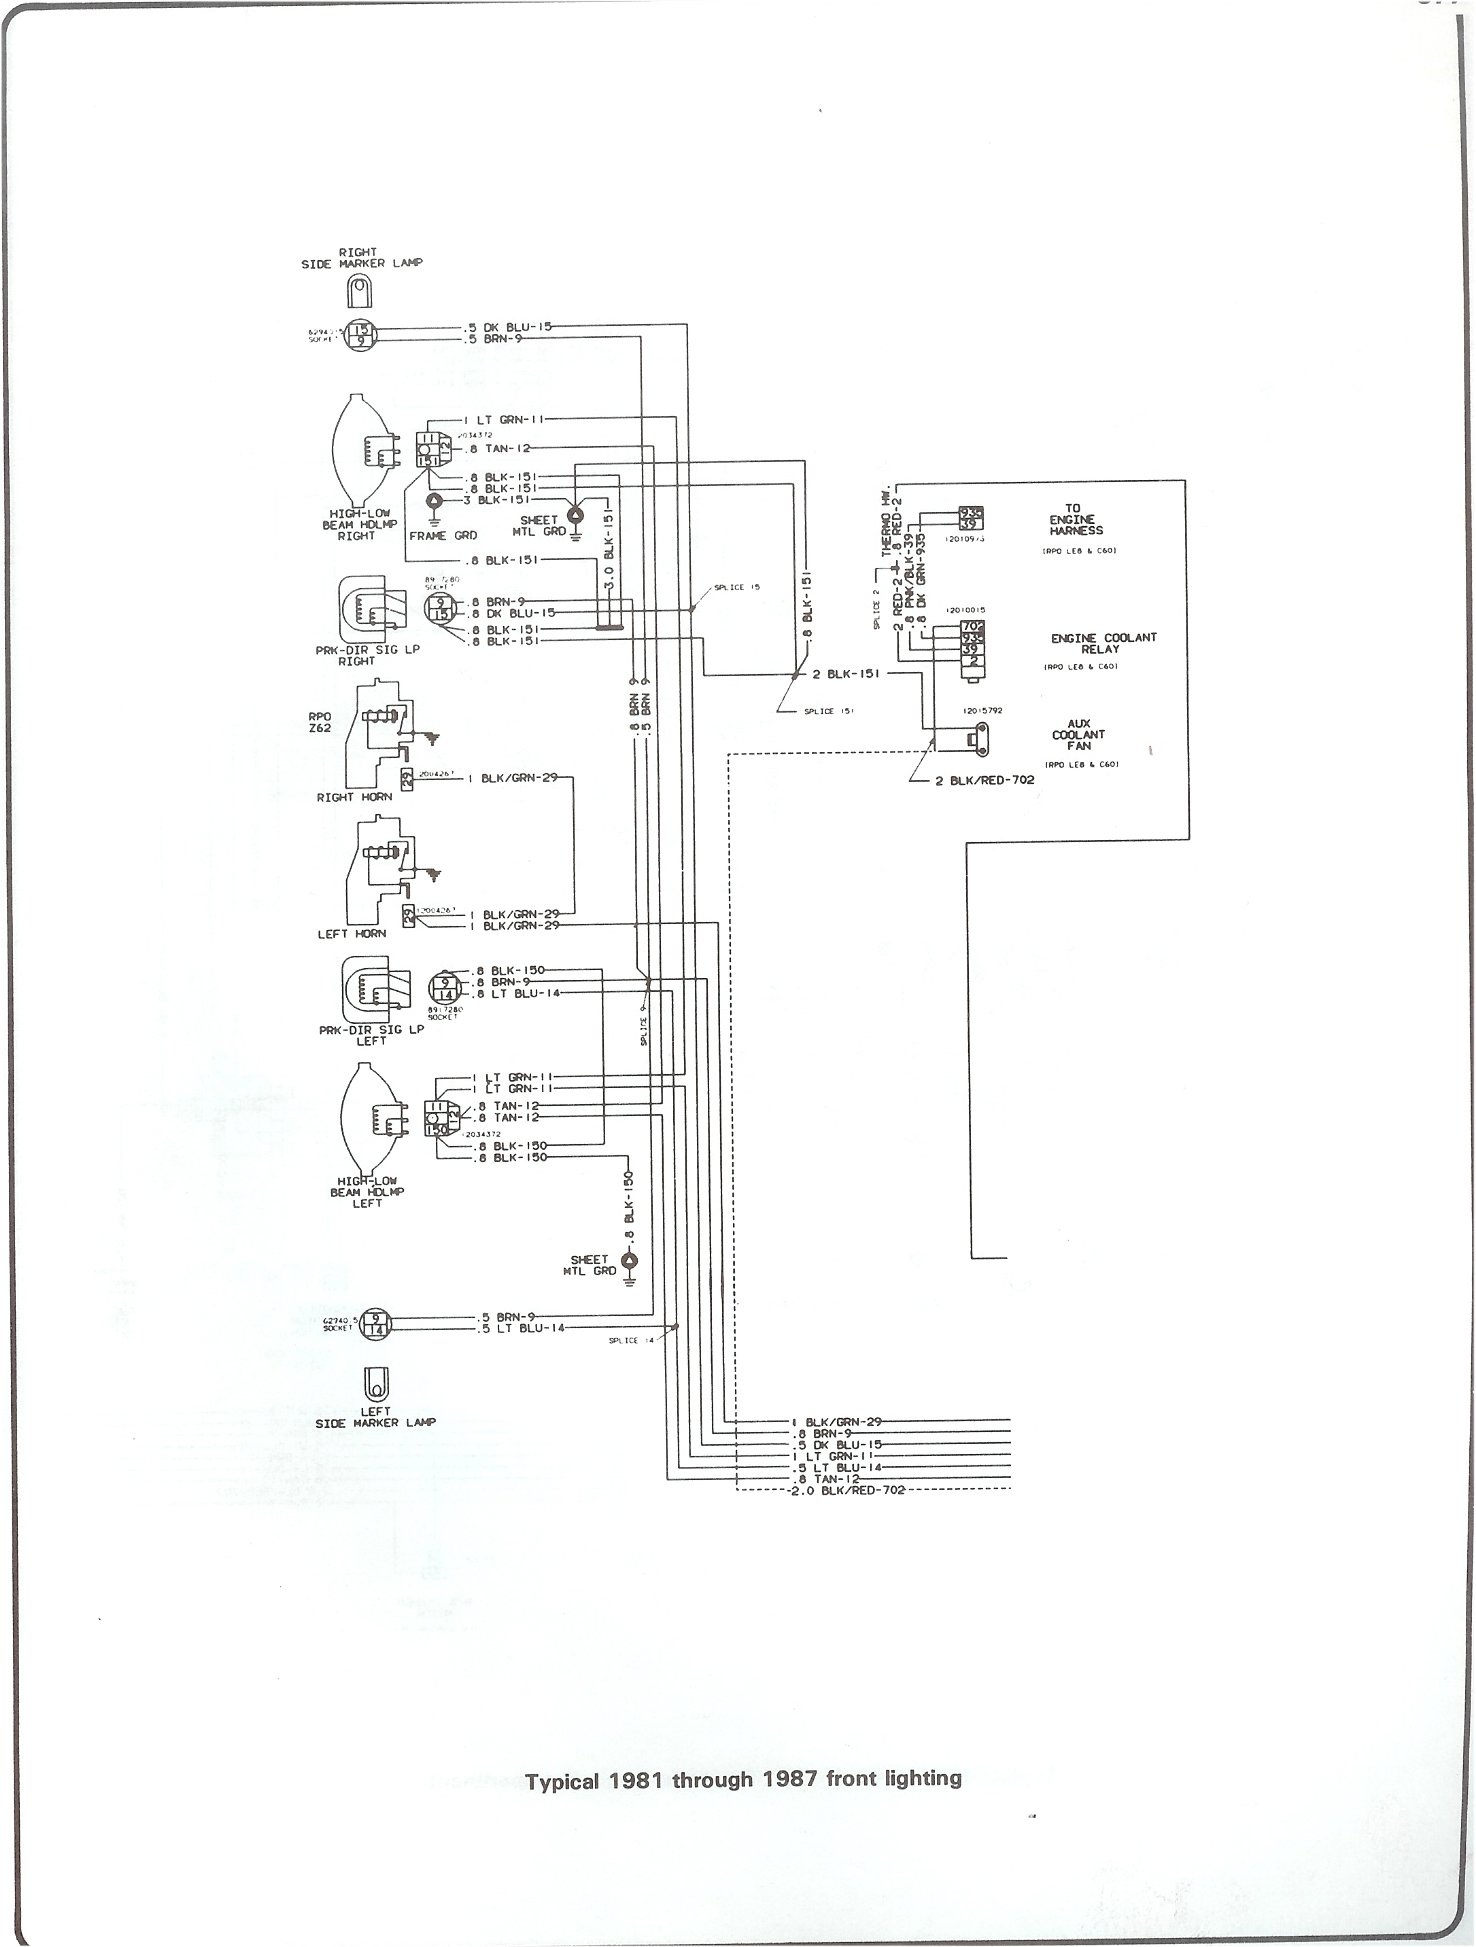 1984 Gmc Sierra Wiring Diagram Simple Wiring Diagram 84 K5 Blazer Wiring  Diagram 84 C10 Power Windows Wiring Diagram